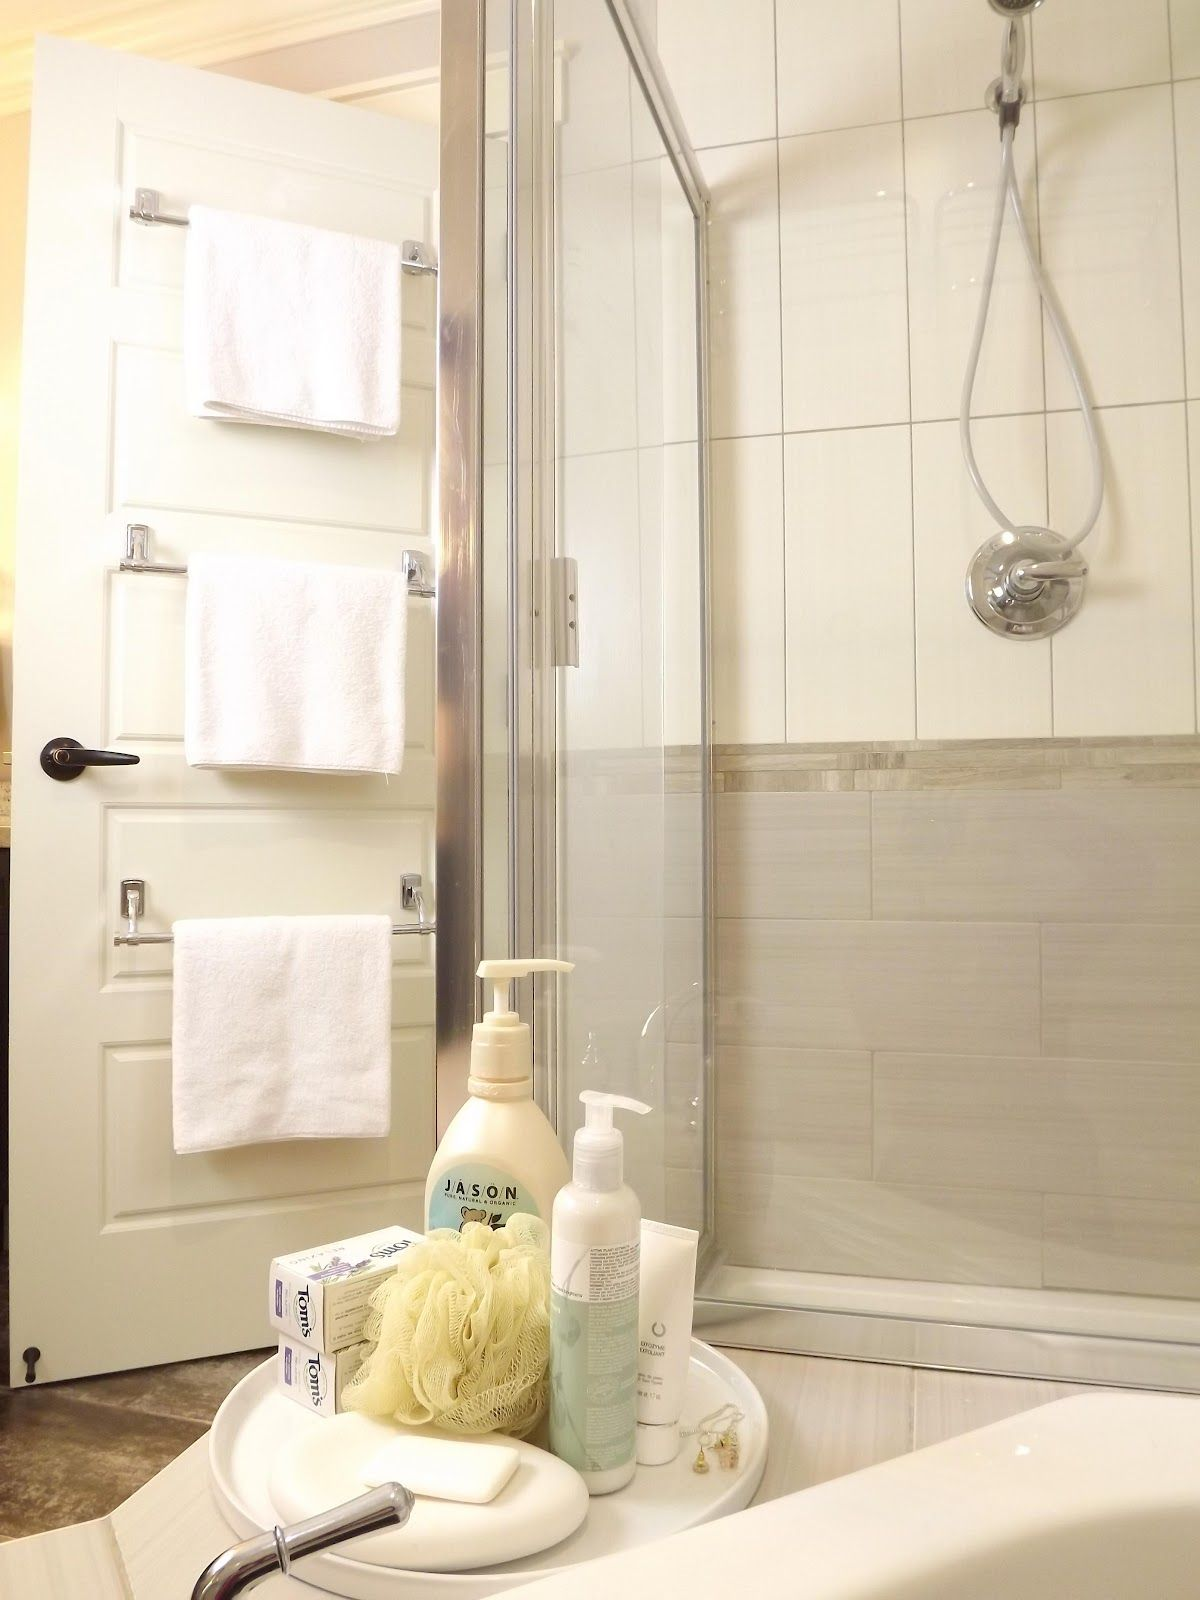 Attach Multiple Towel Bars To The Back Of The Bathroom Door For - Towel bar ideas for small bathrooms for small bathroom ideas